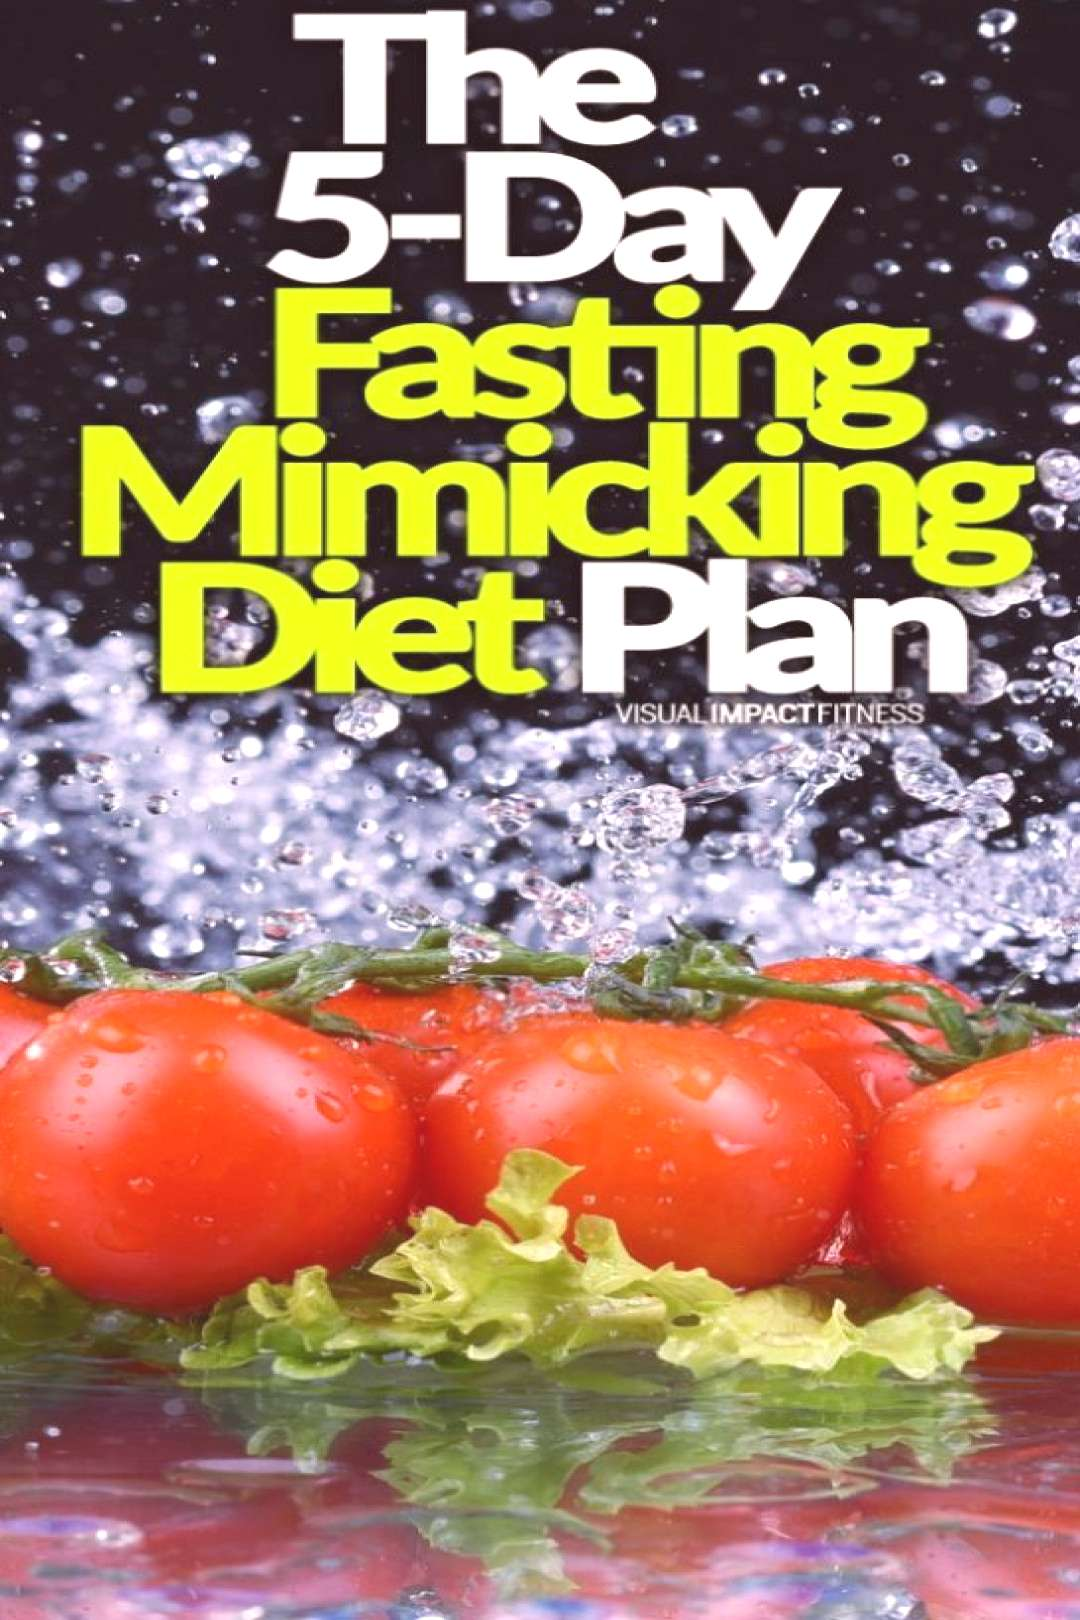 The 5-Day Fasting Mimicking Diet Plan | What Foods to Eat - The Fasting Mimicking Diet plan is out